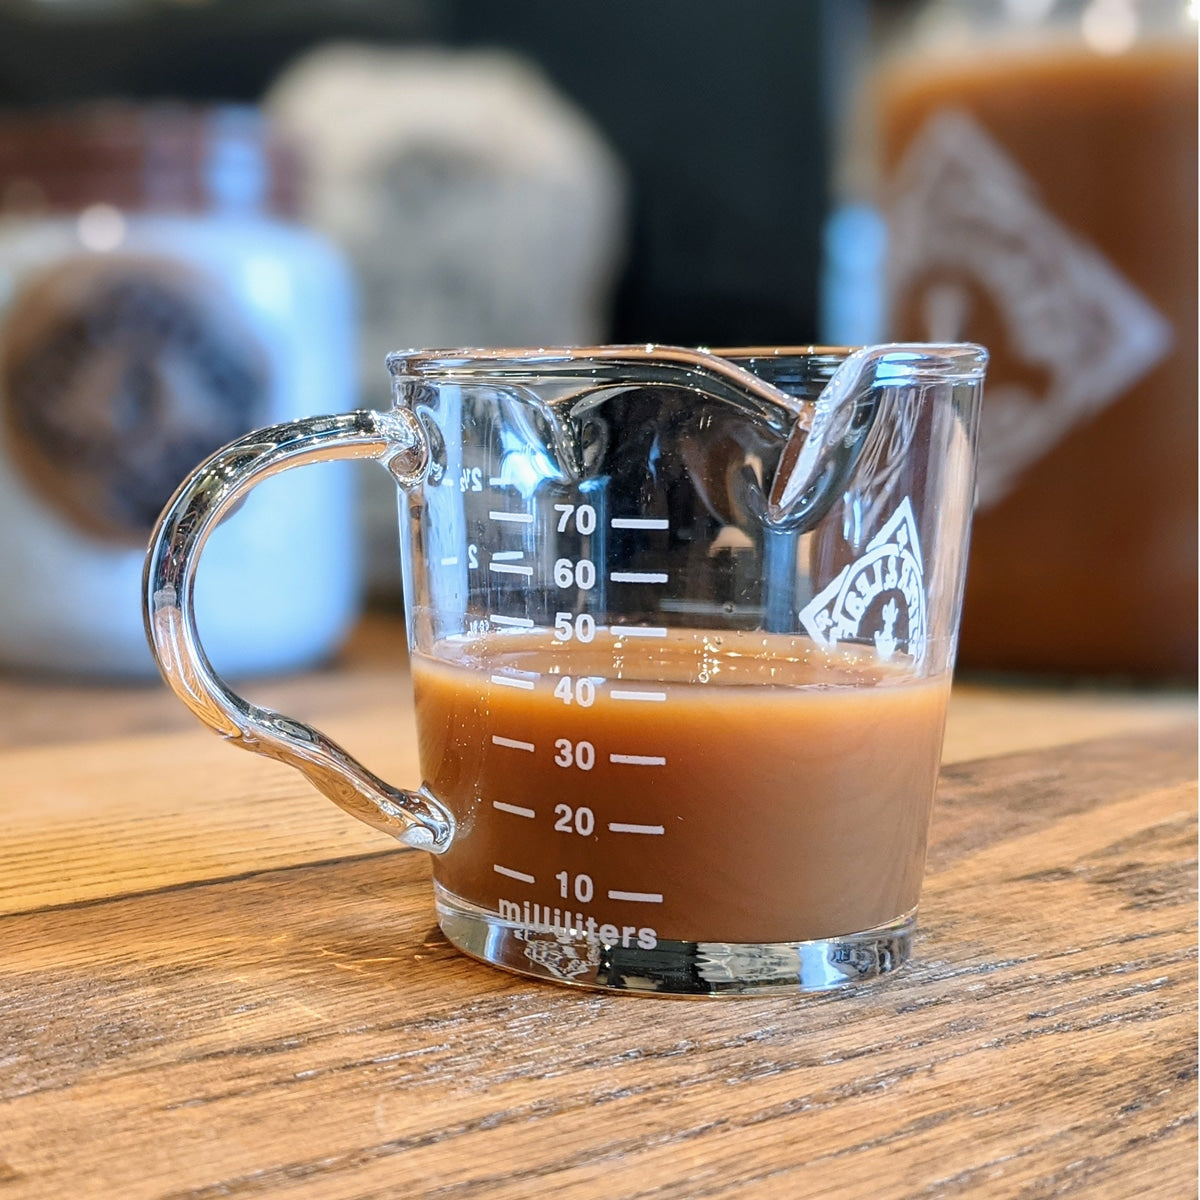 Piper Mini Measure - a tiny glass measuring cup with a little handle. Up to 70 milliliters or 2.5oz